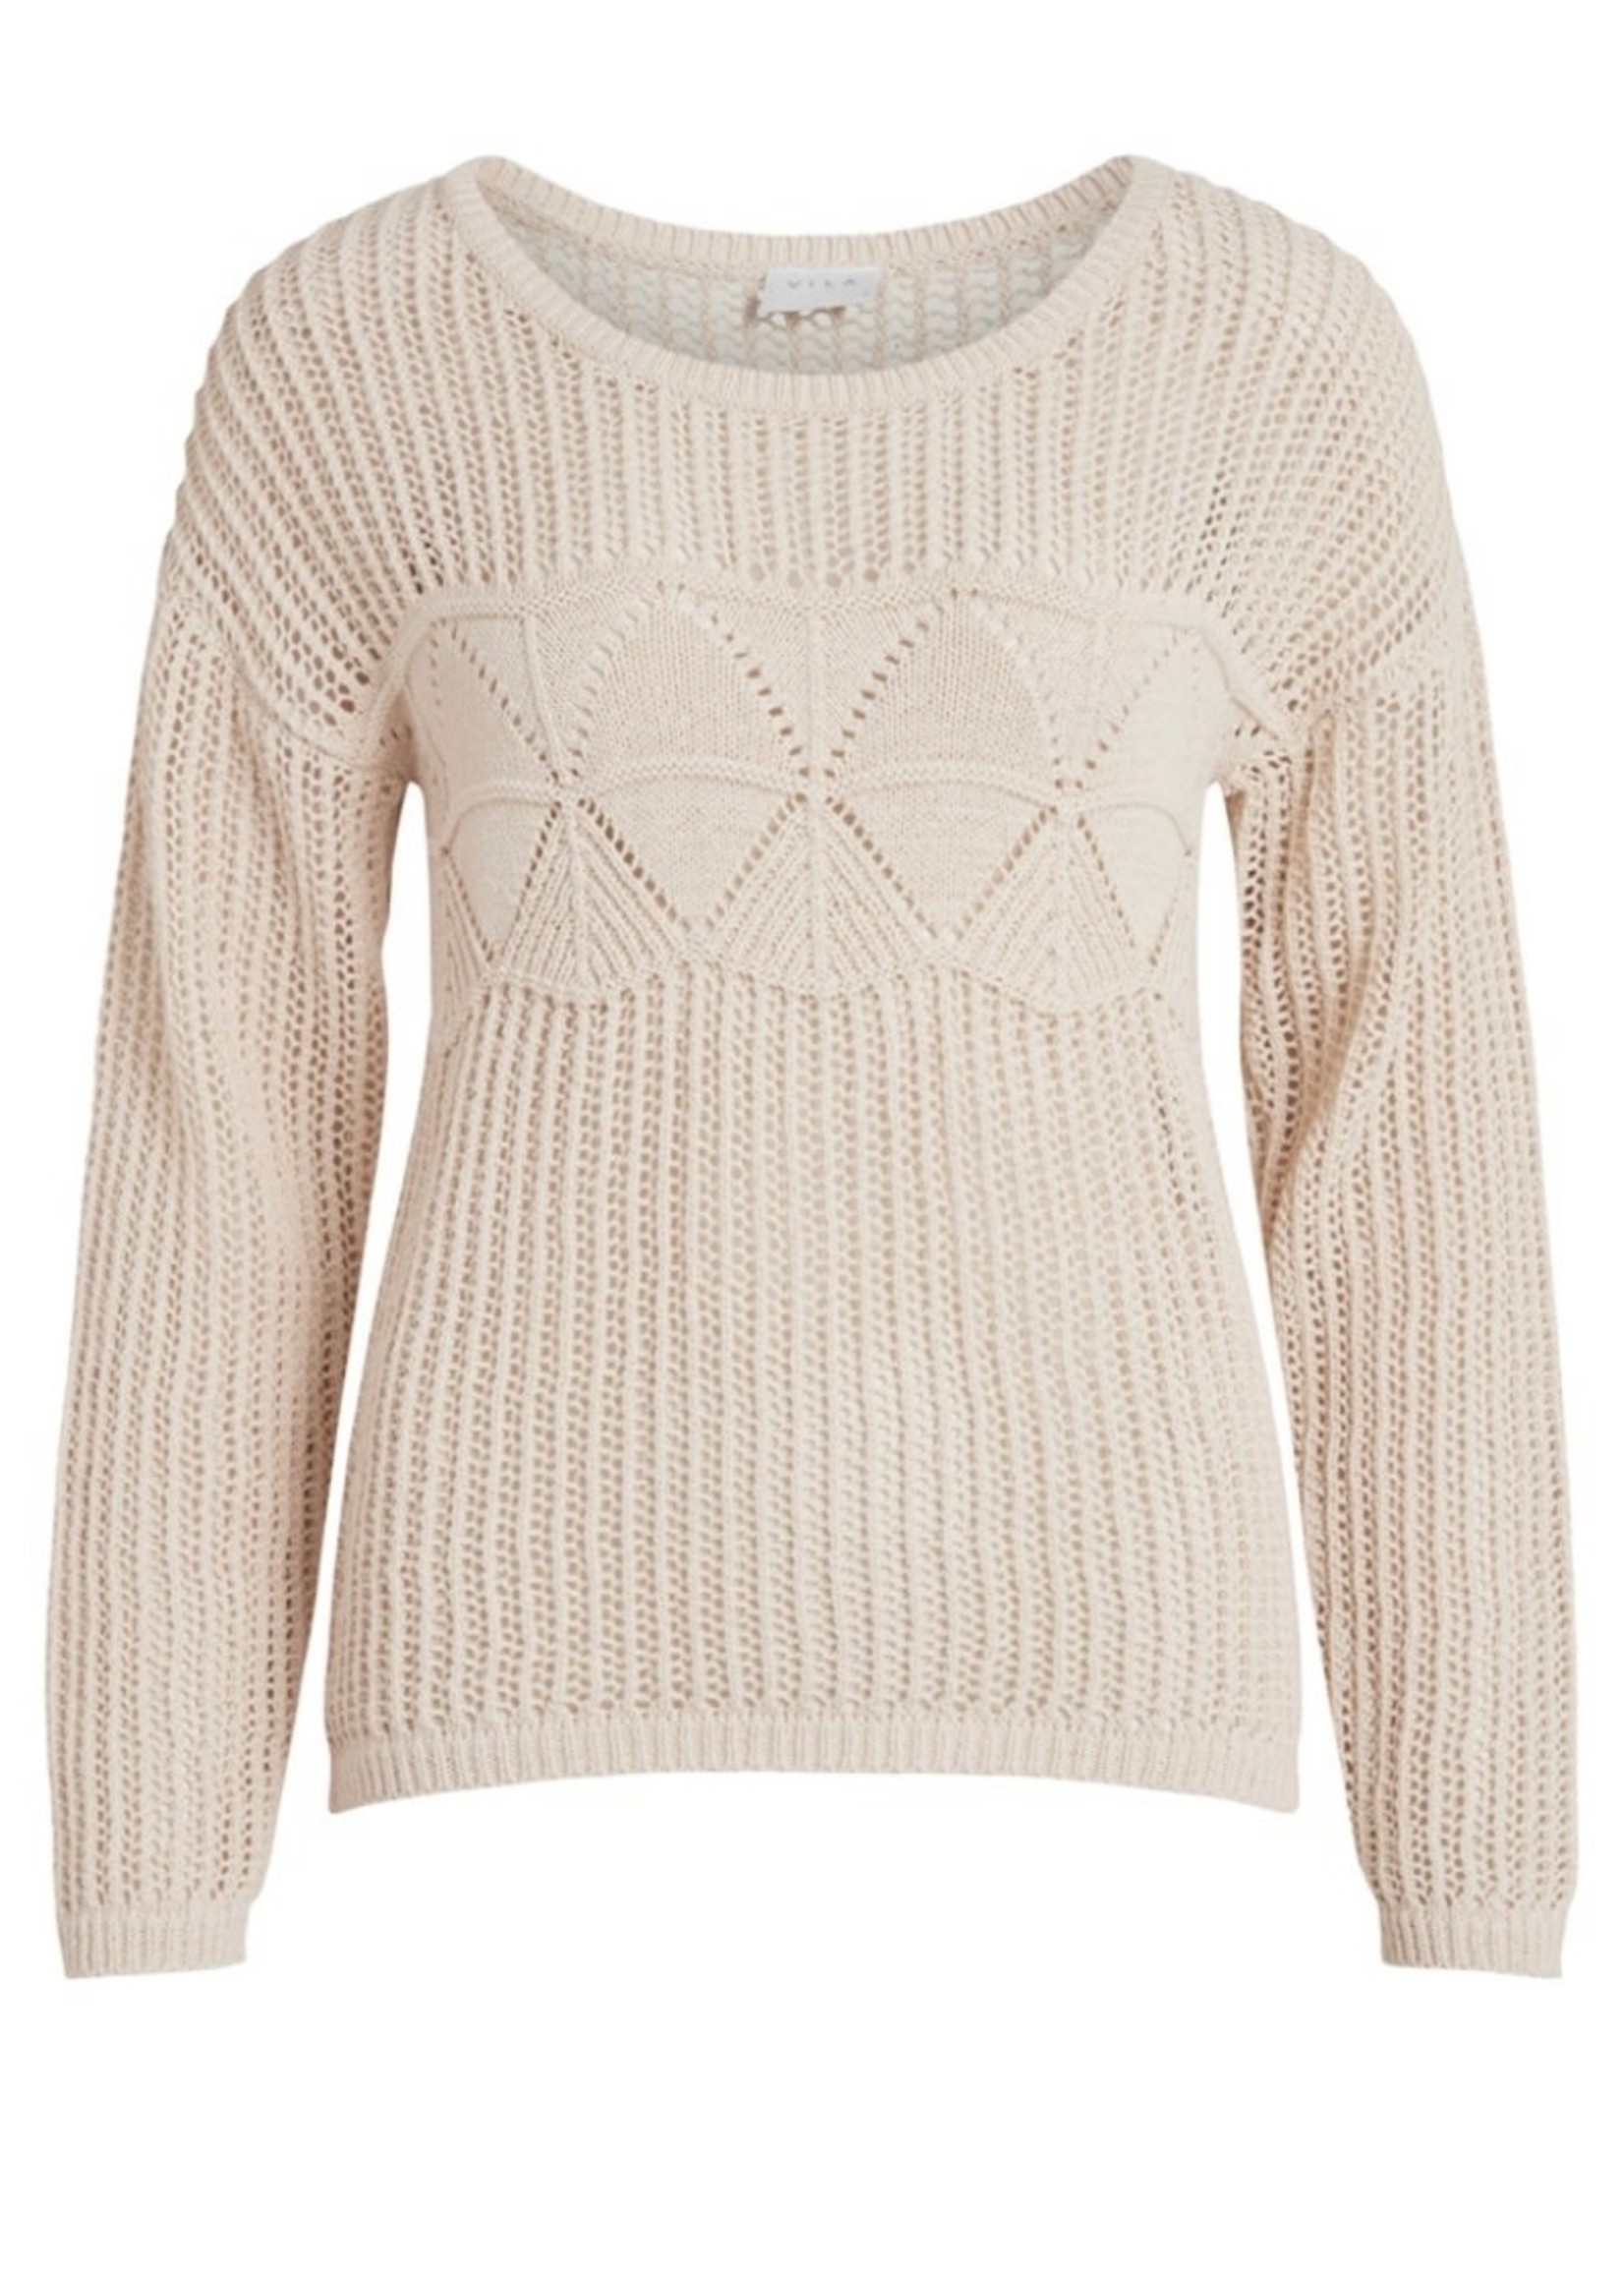 VILA VILELAS L/S O-NECK PATTERN KNIT TOP Birch